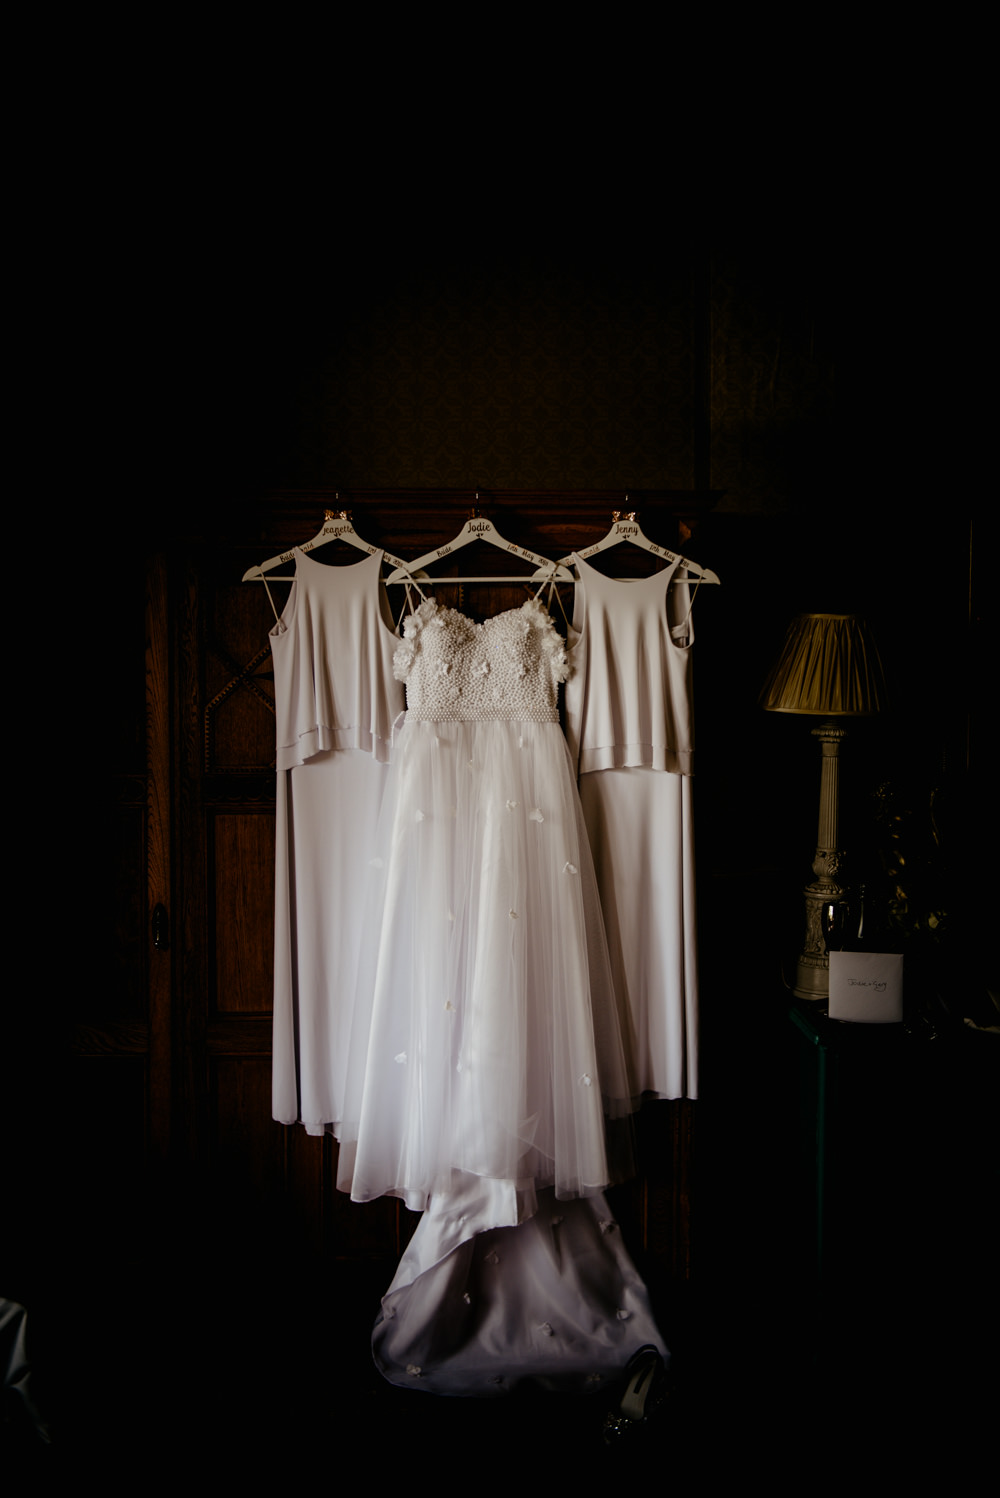 Dress Gown Bride Bridal Bridesmaids Crow Hill Wedding Tim Simpson Photography